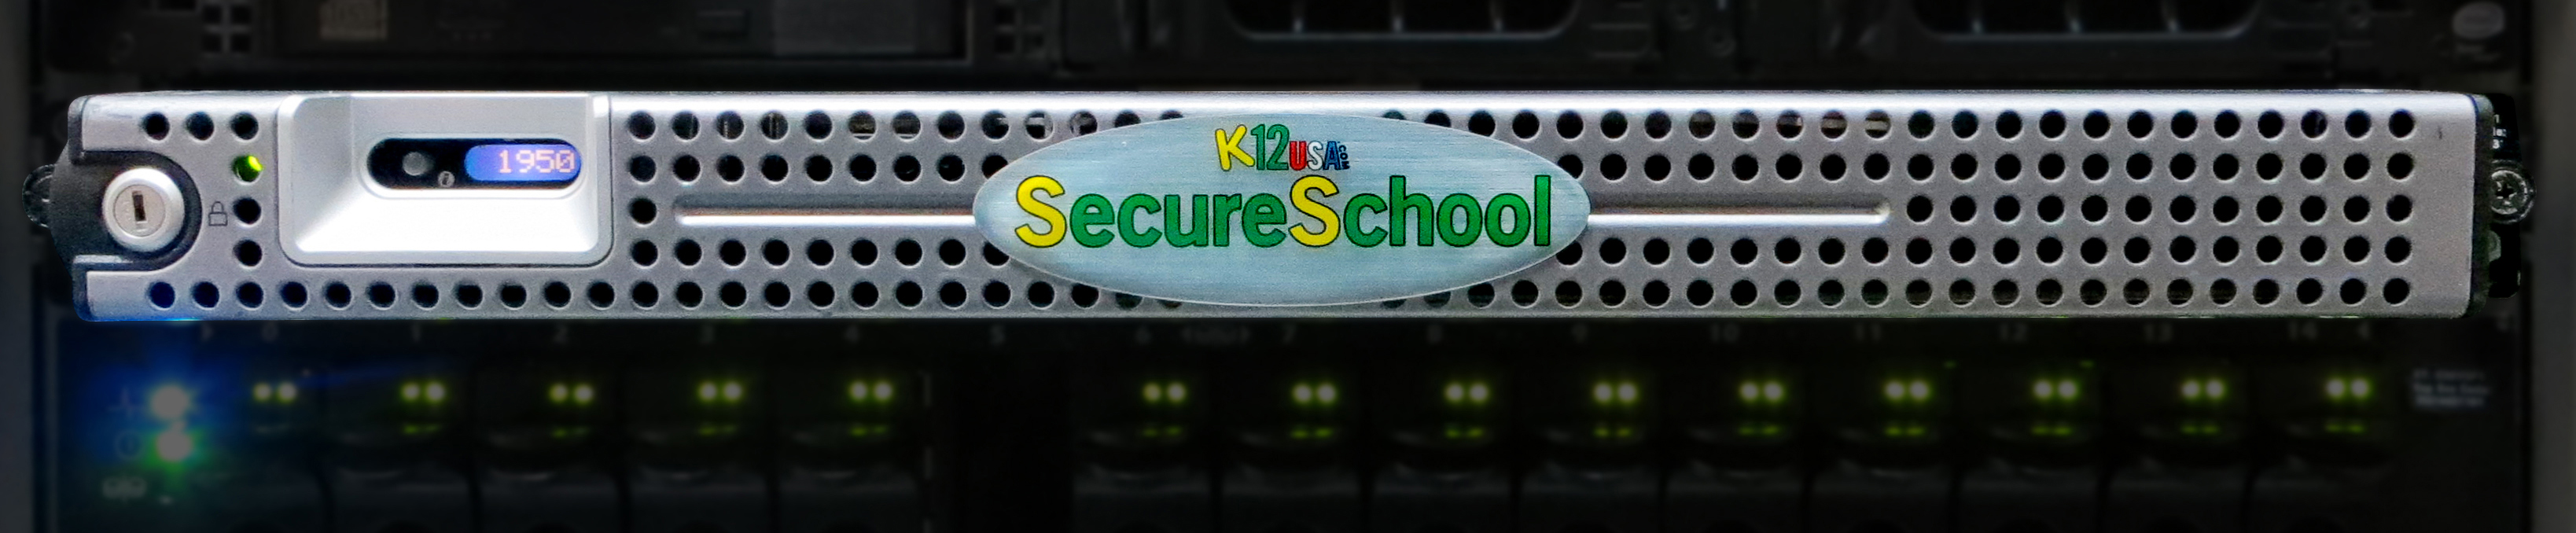 SecureSchool Internet Filter comes with a built-in firewall and cache server.